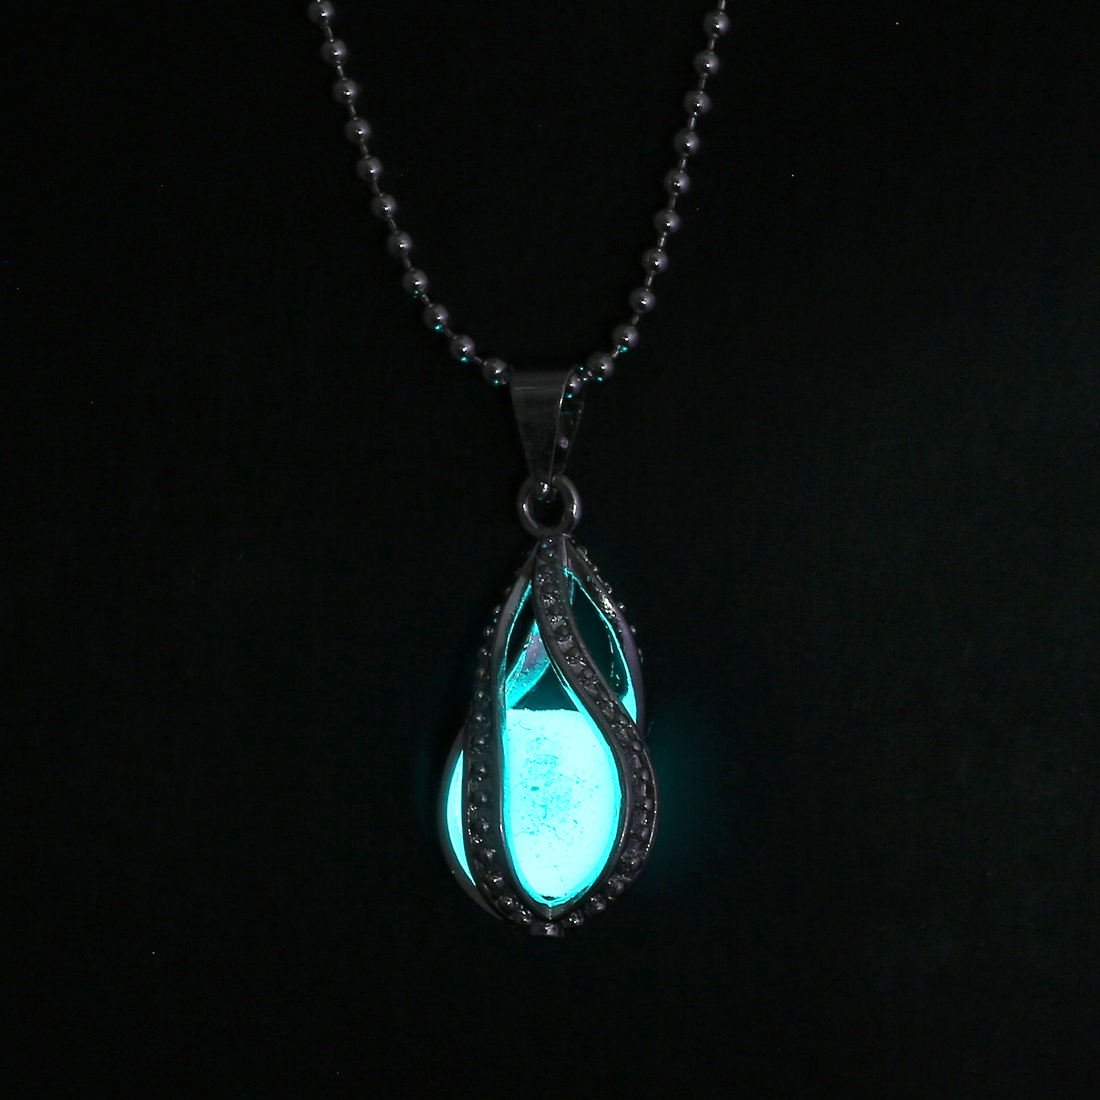 steampunk pretty magic round fairy locket necklace glow in the dark pendant gift ebay. Black Bedroom Furniture Sets. Home Design Ideas